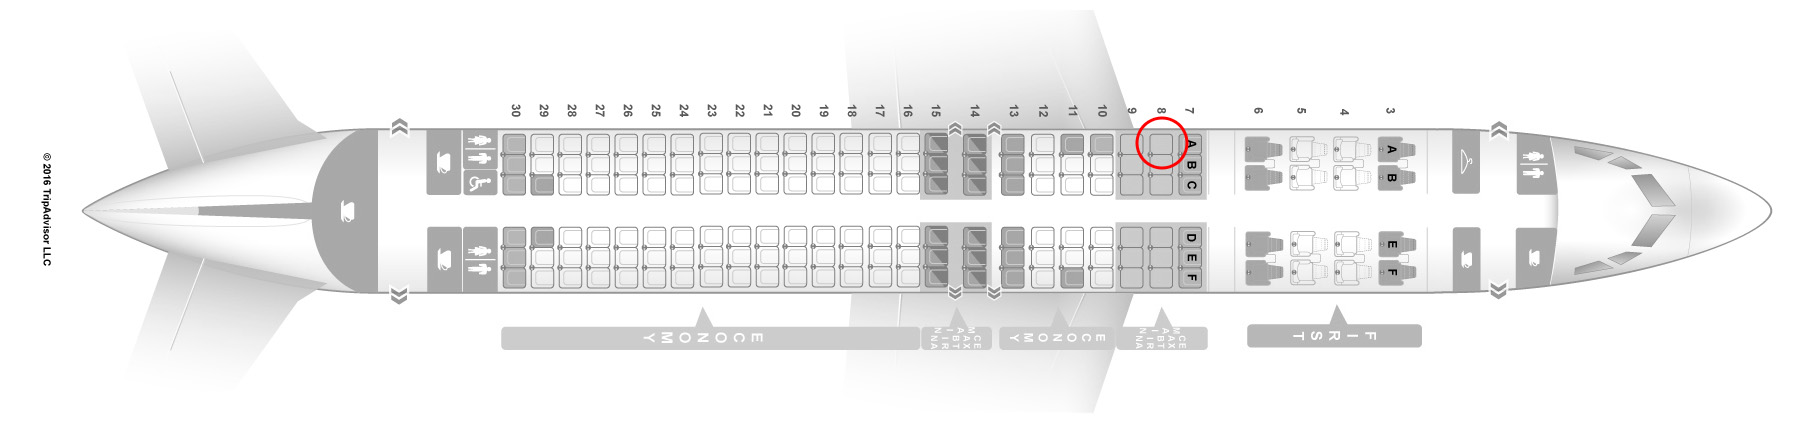 american airlines 737-800 seat map